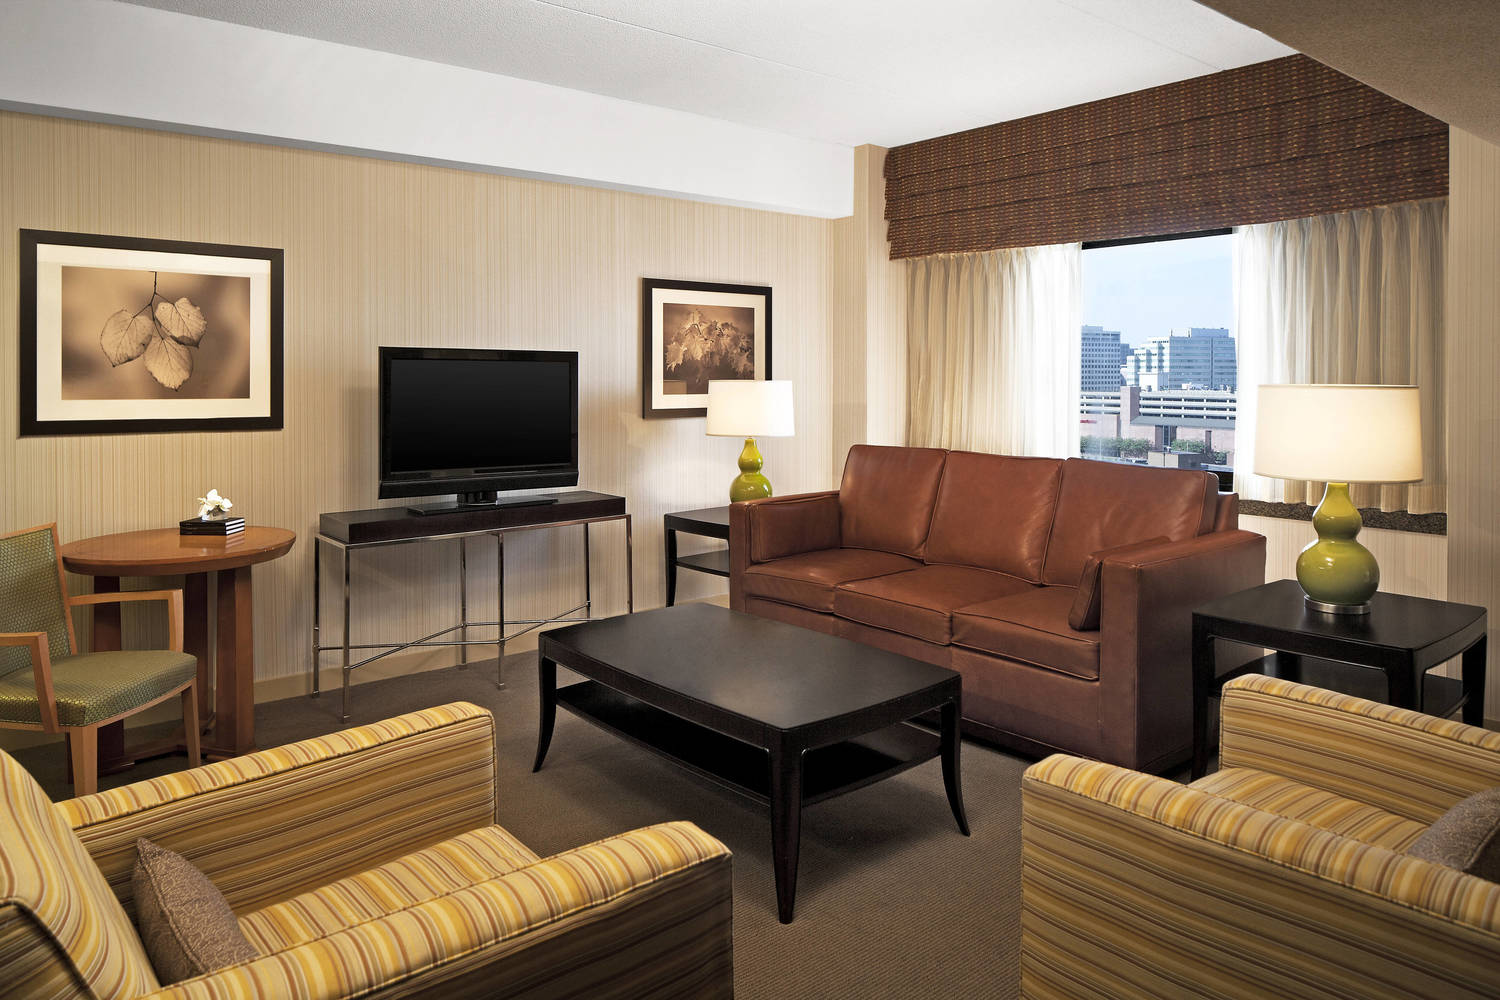 sheraton stamford hotel stamford ct jobs hospitality. Black Bedroom Furniture Sets. Home Design Ideas